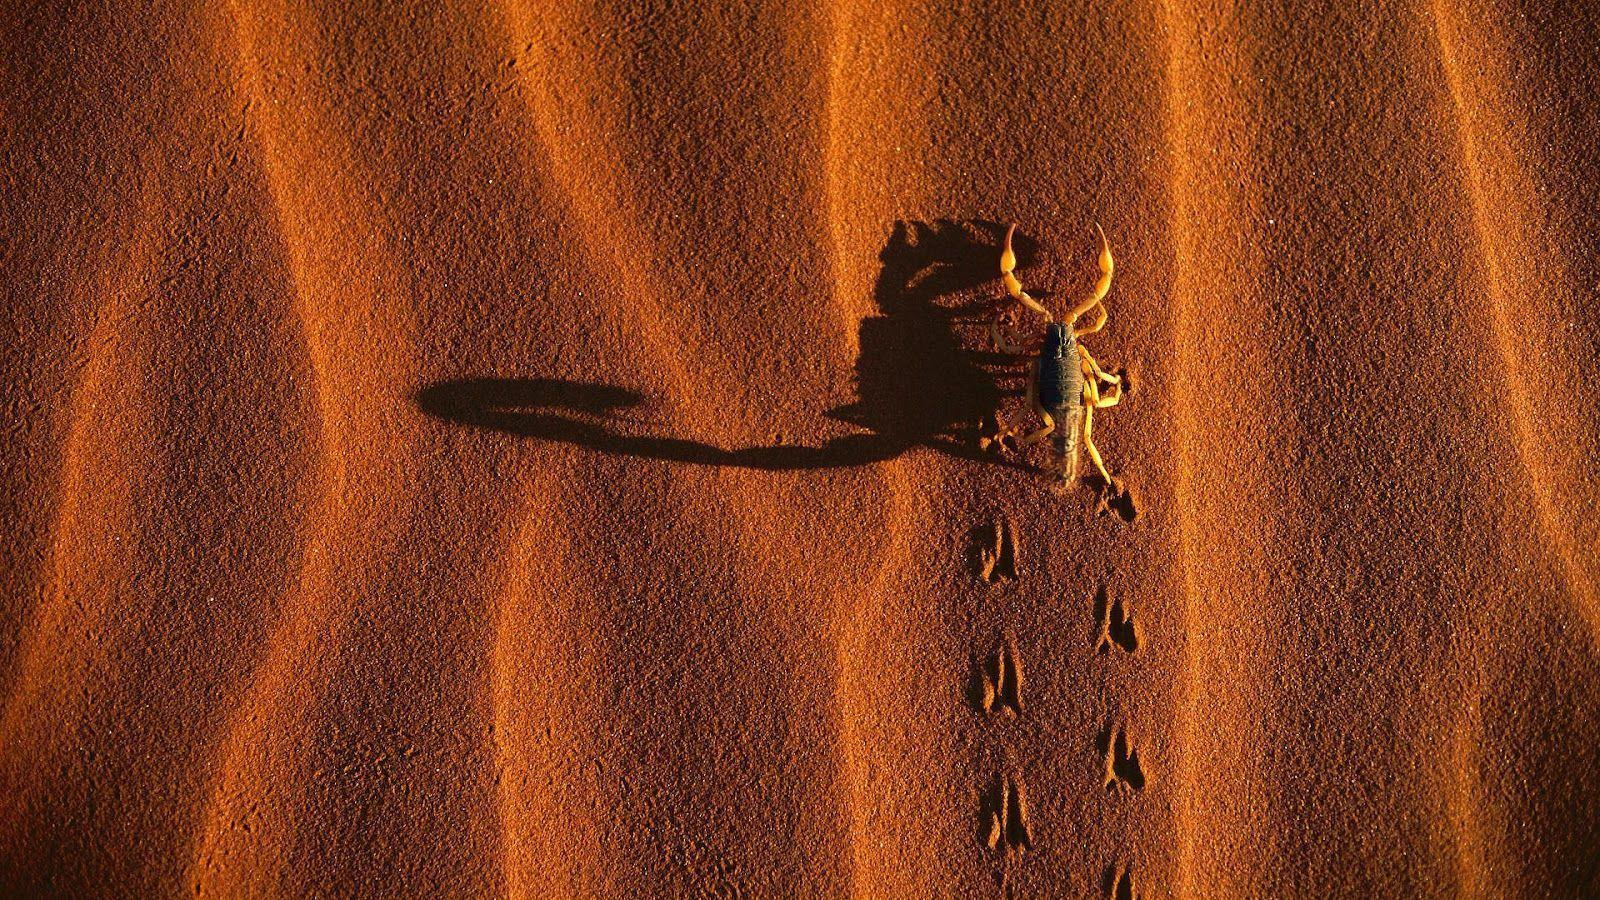 Scorpion Animal Wallpapers 12 Image 1600x900 HD Wallpapers for